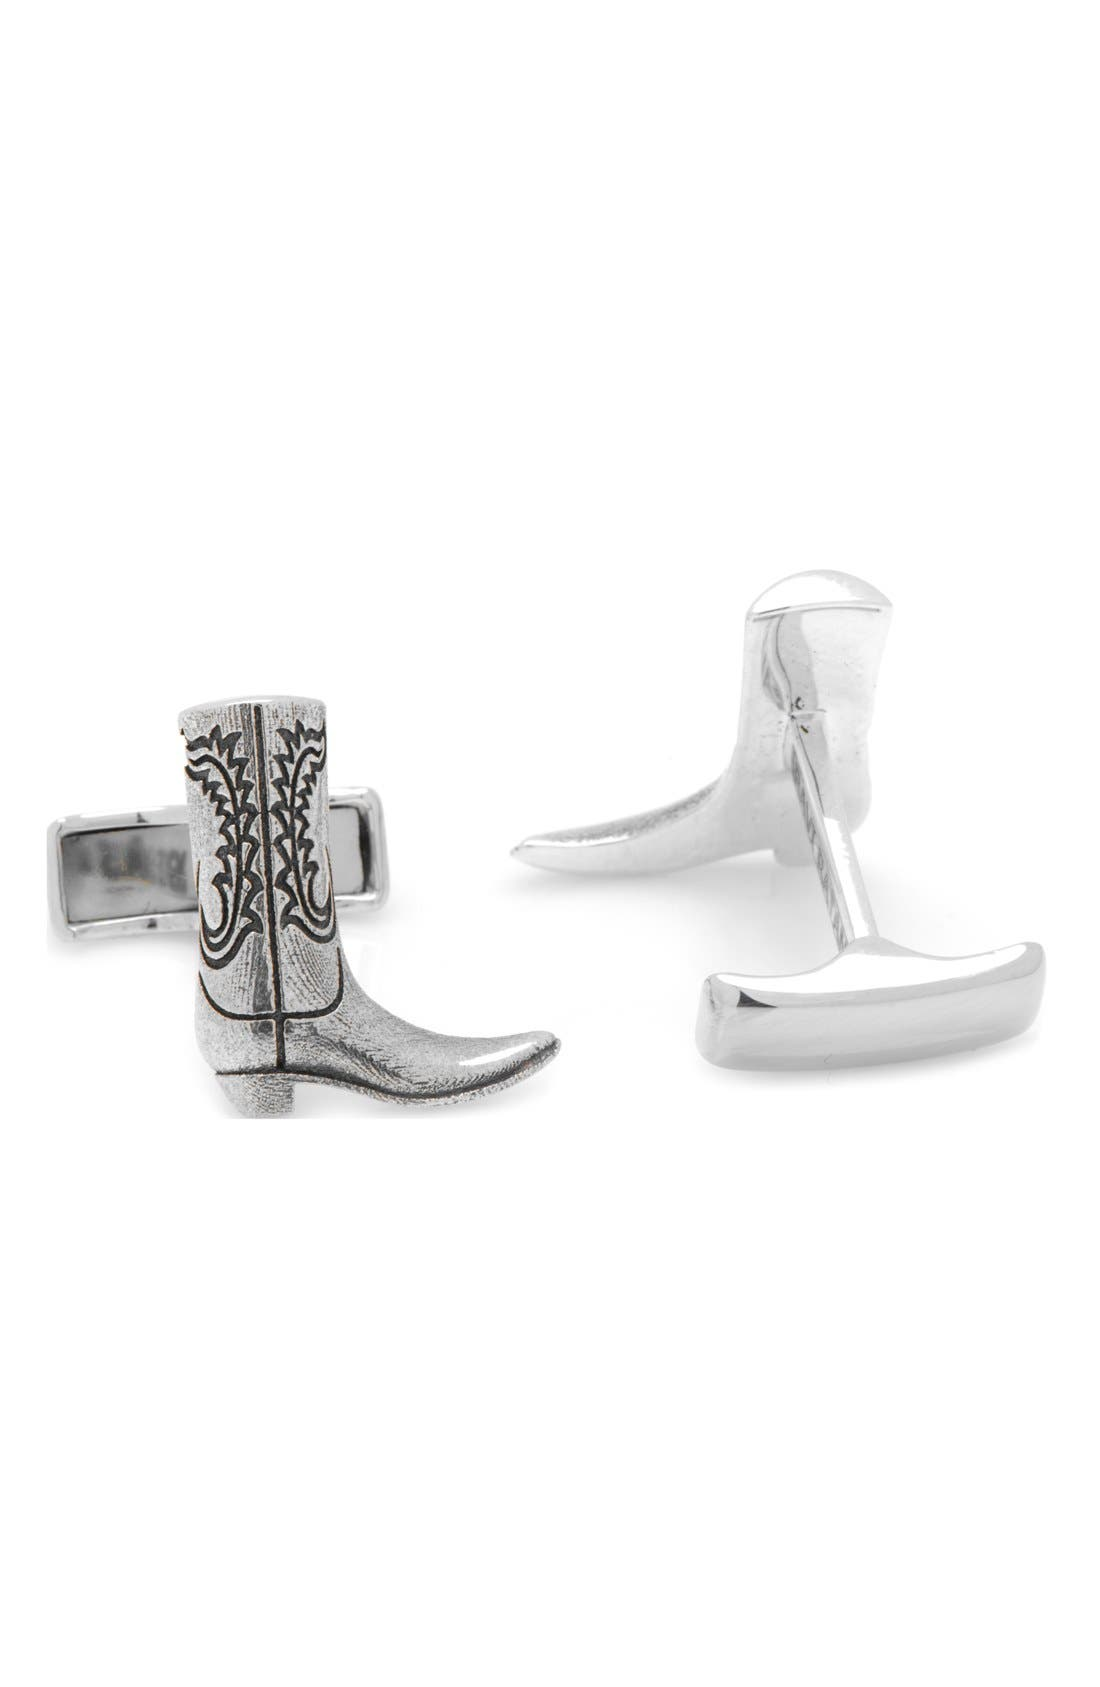 Ox and Bull Trading Co. 'Boot' Cuff Links